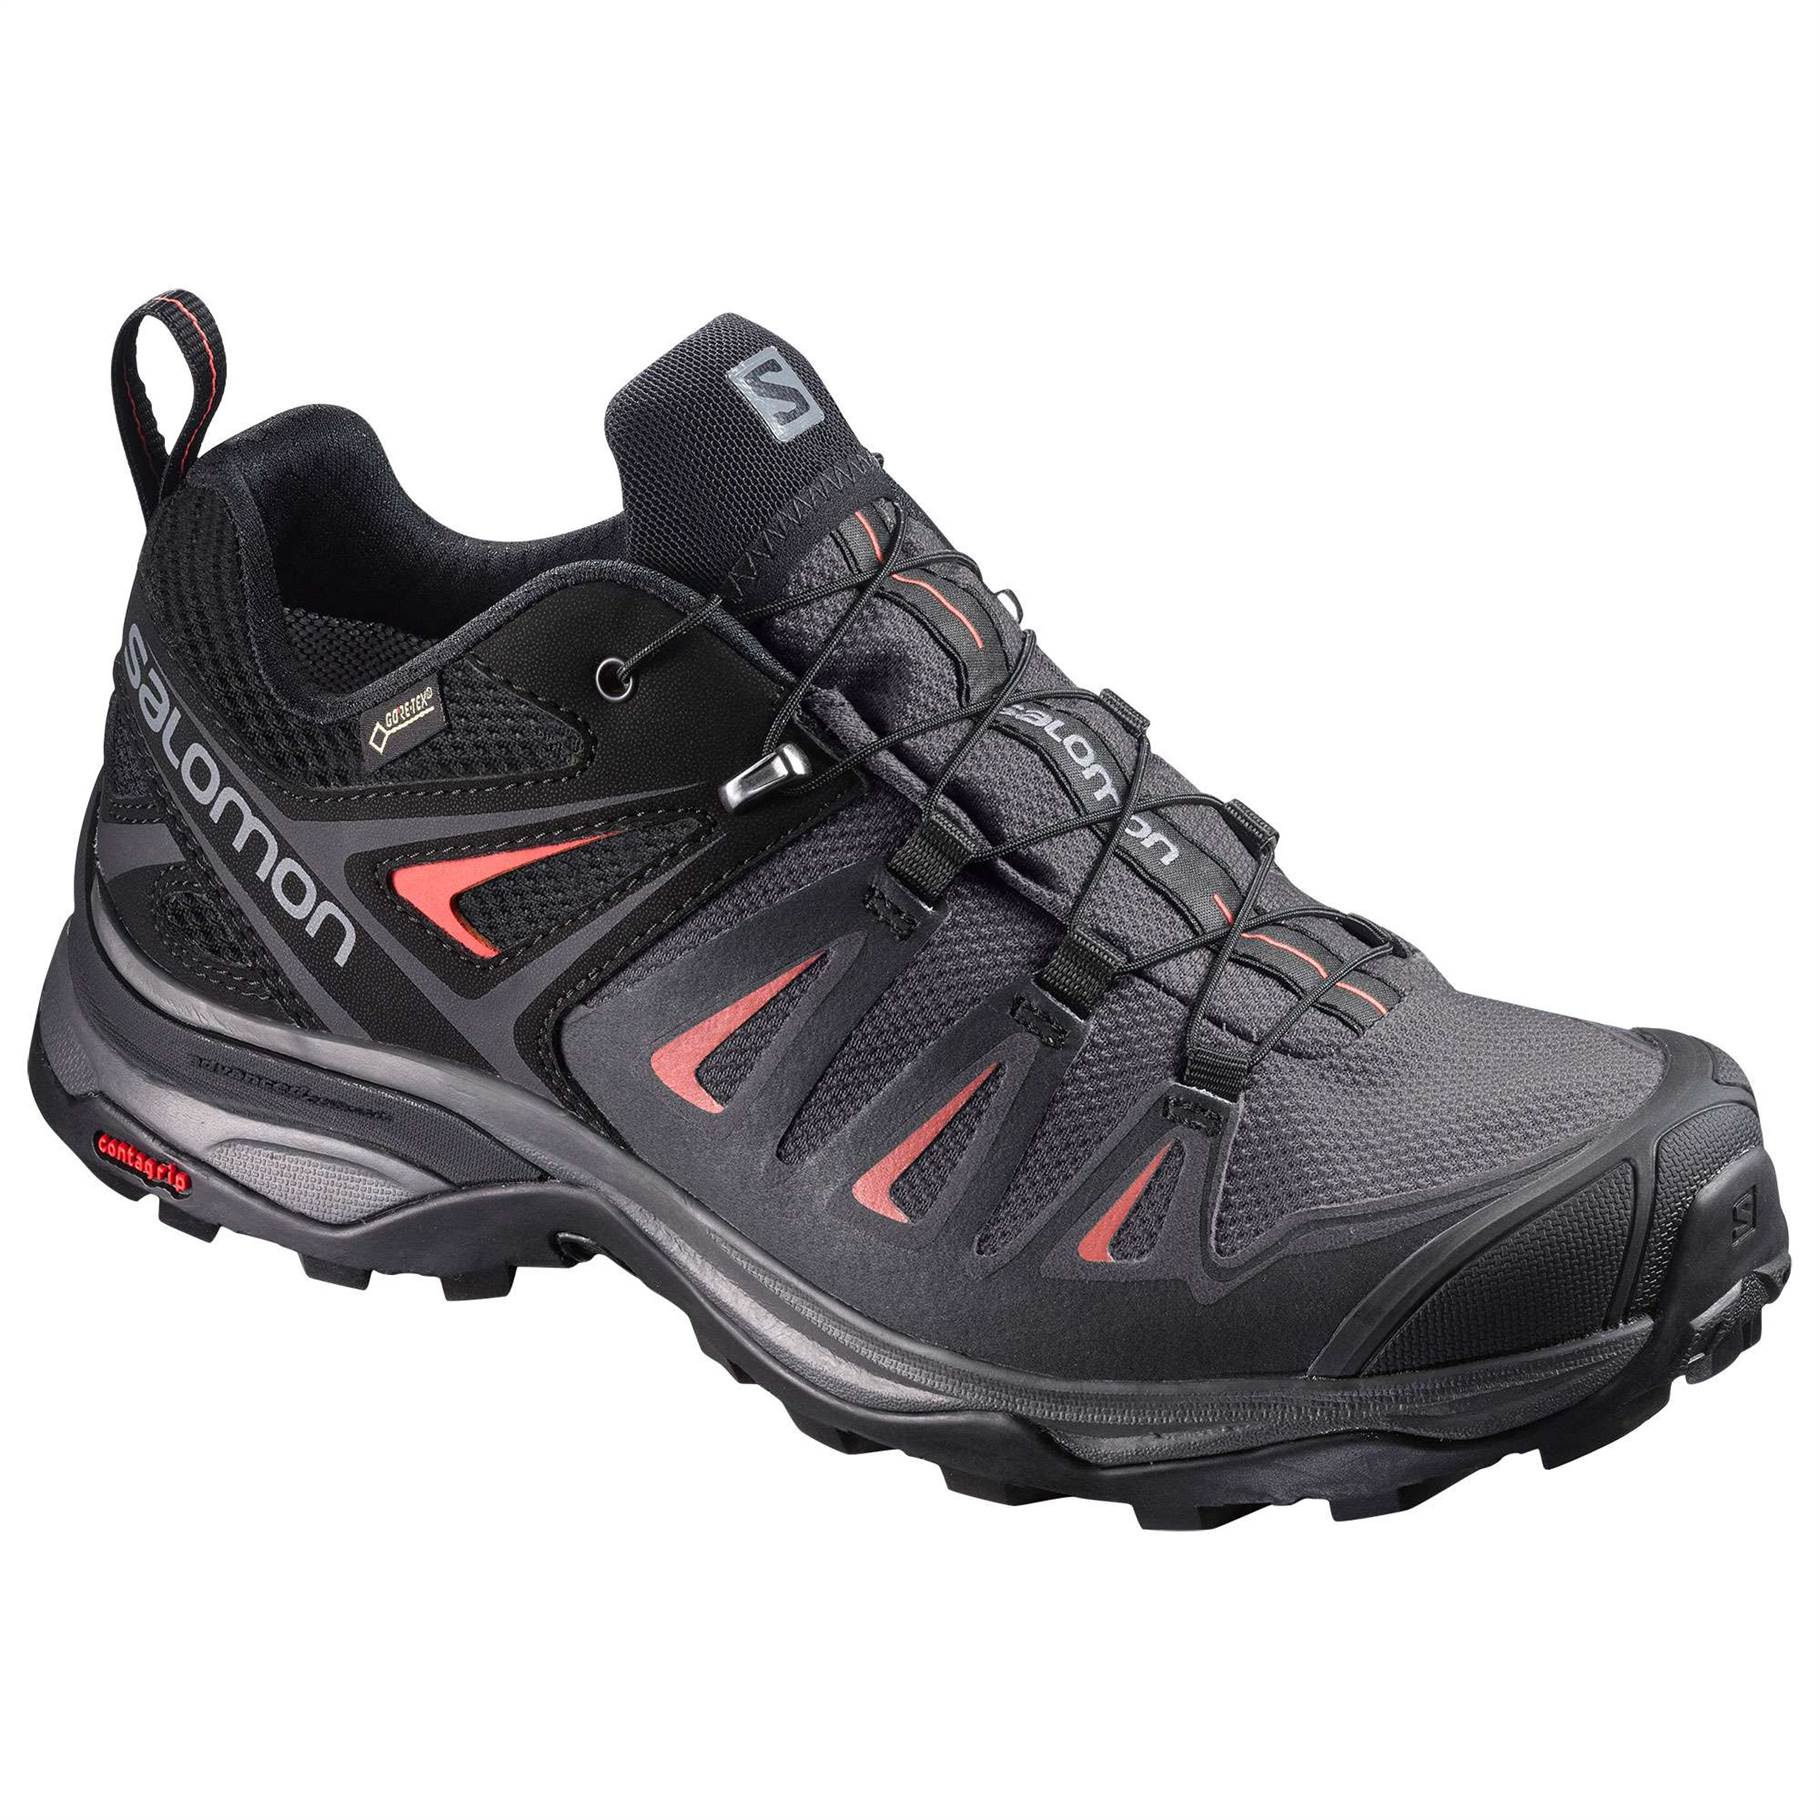 X Ultra 3 GTX Shoe - Women's